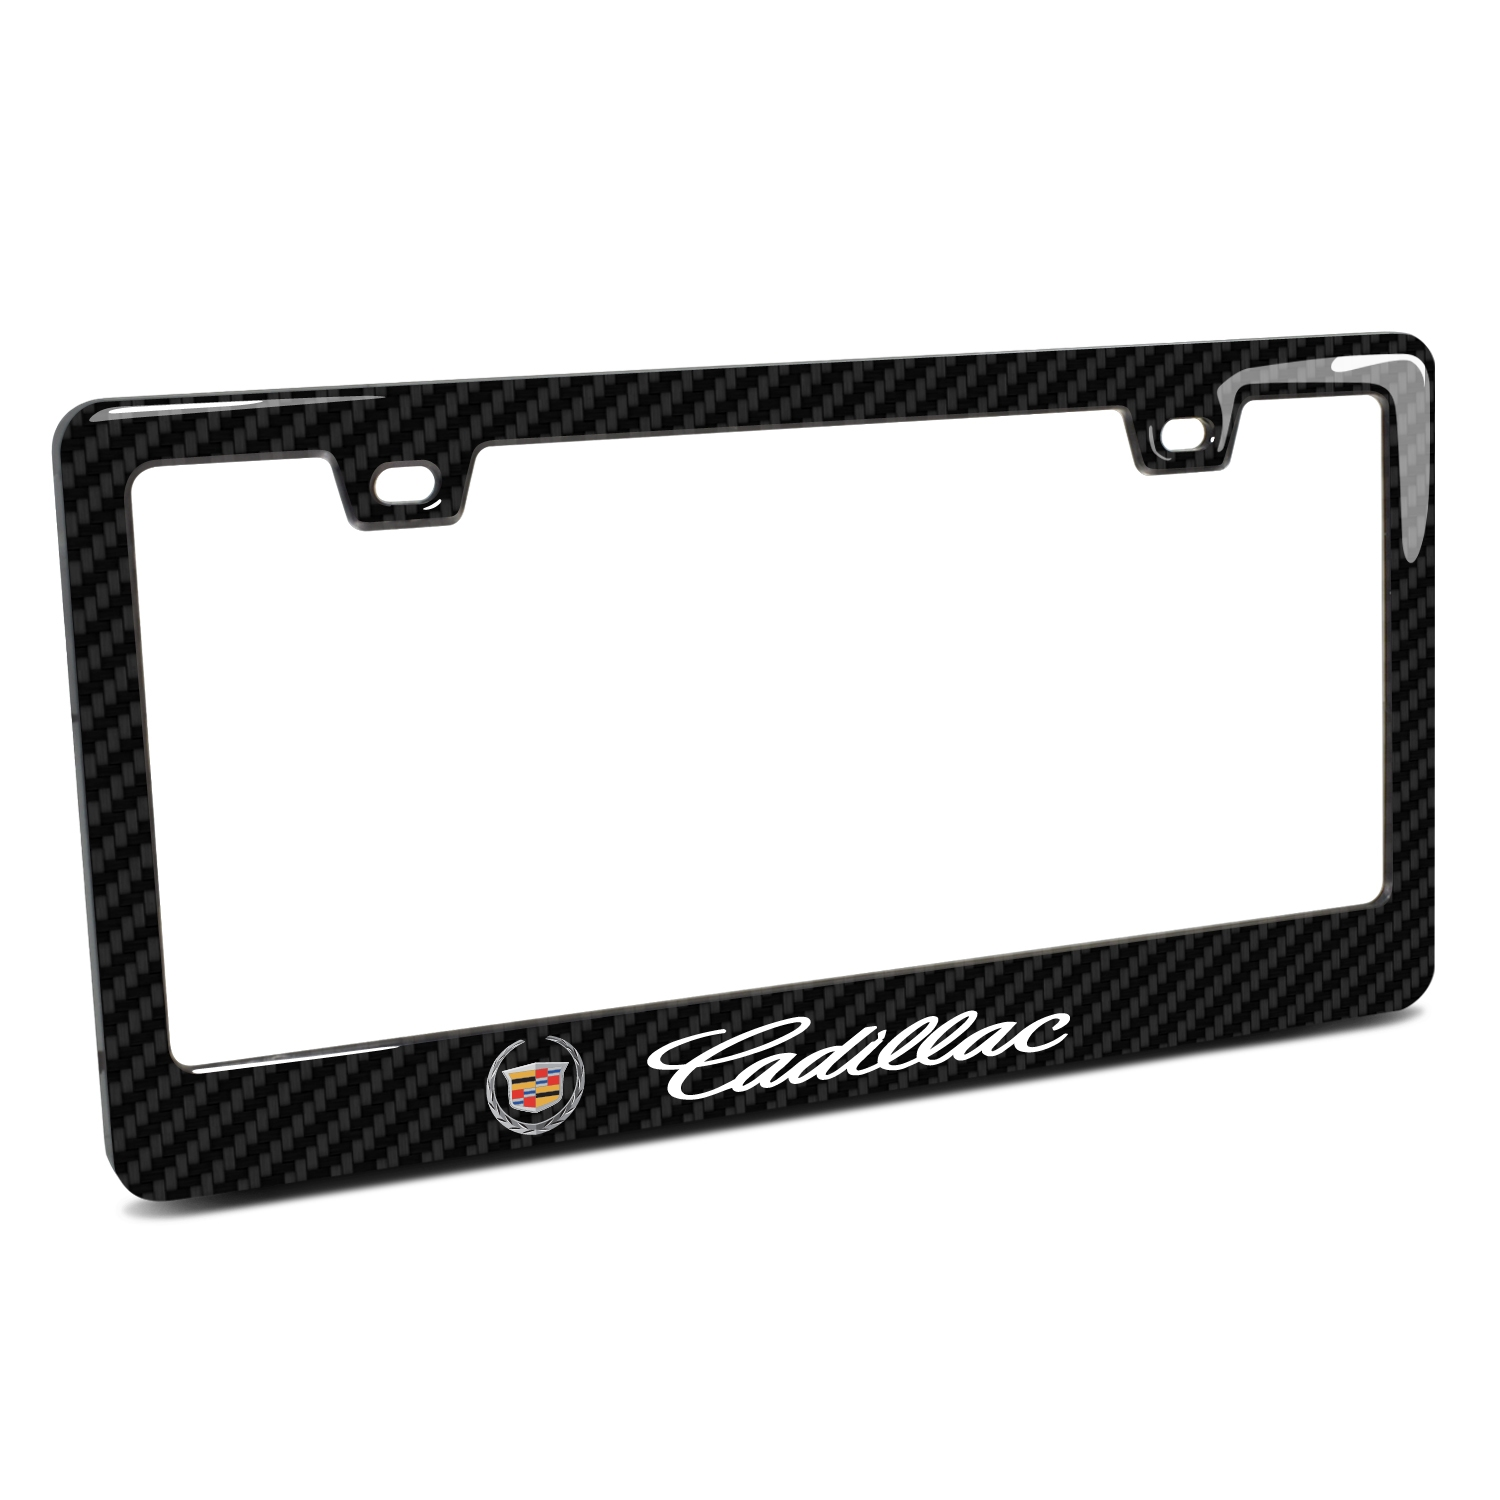 Cadillac Logo in 3D on Real 3K Carbon Fiber Finish ABS Plastic License Plate Frame